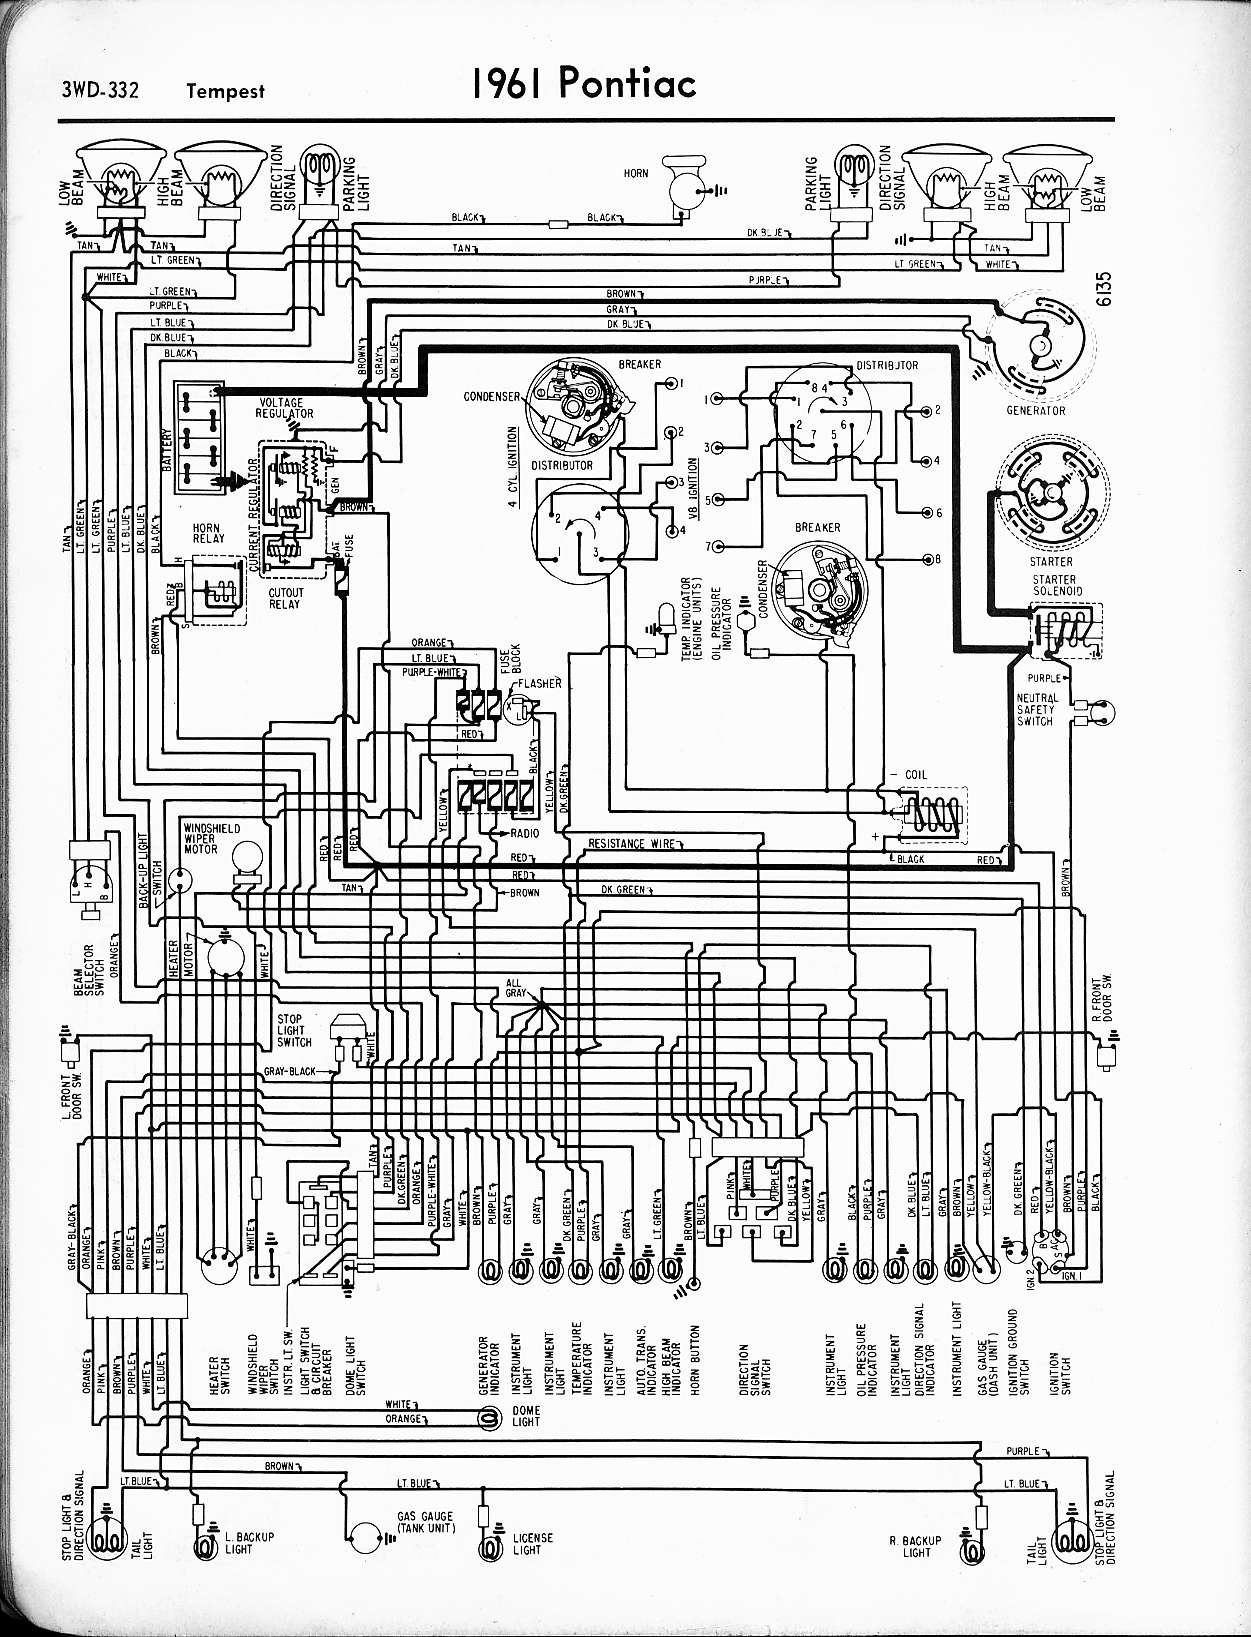 Chassis Electrical Wiring Diagram Of Oldsmobile And Series V as well Chevelle Horn Relay Wiring further Gto Hood Tach Schematic as well Pontiac Lemans Thumb as well Pontiac Catalina Dr V Hardtop Fastback Like Chevy Impala. on 1968 pontiac le mans wiring diagram